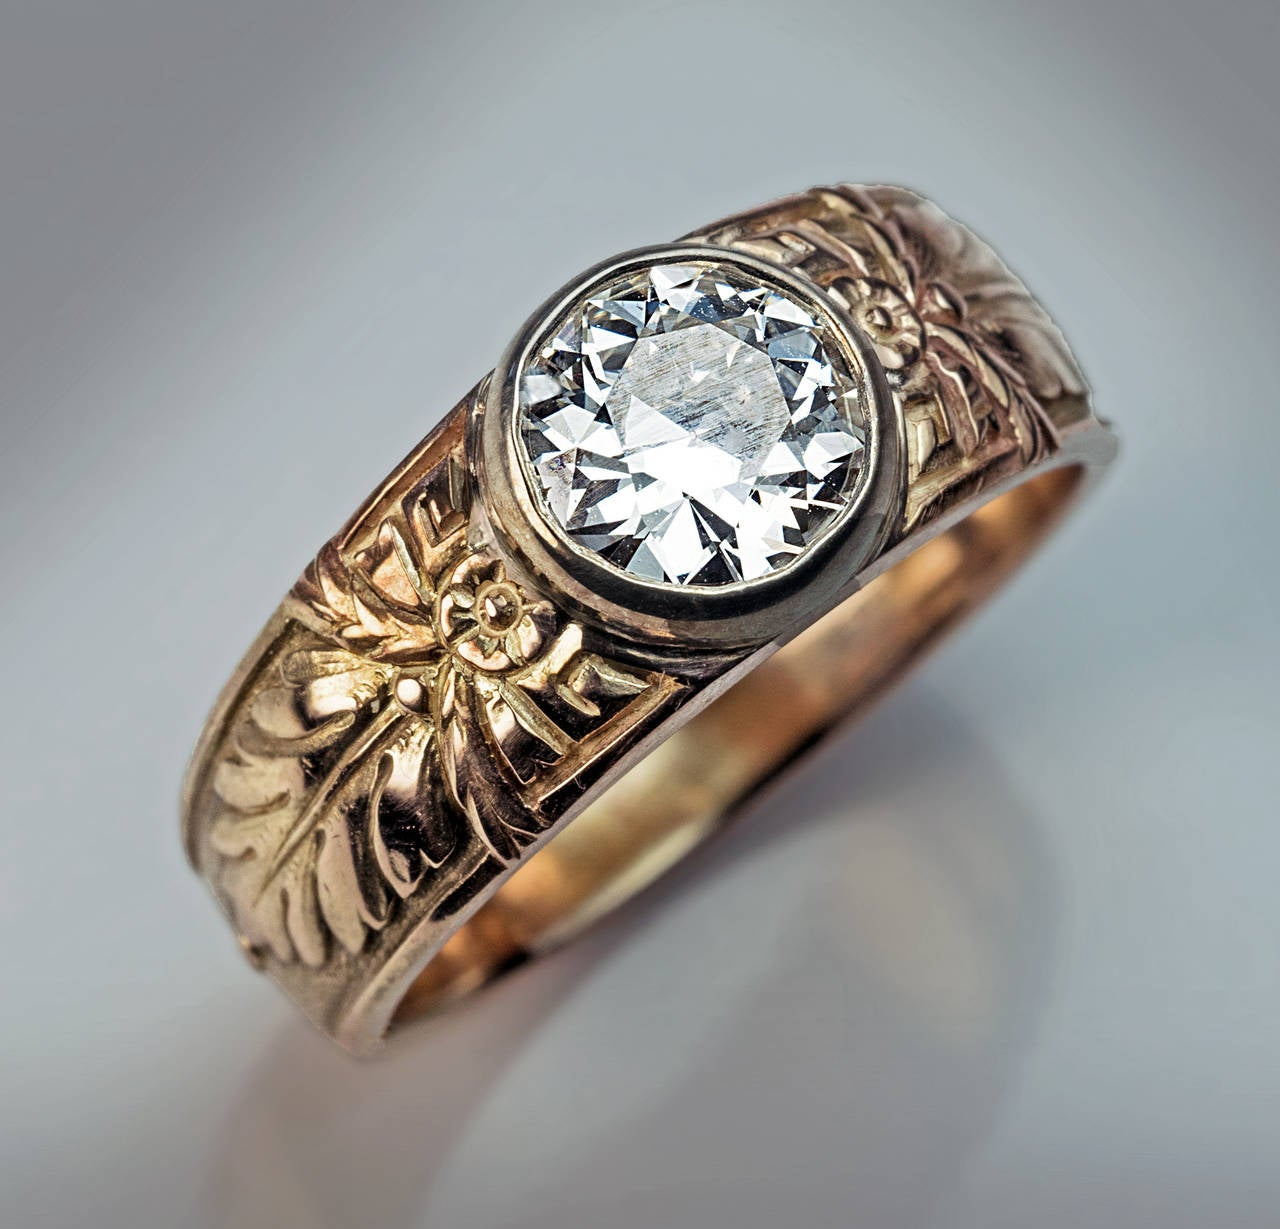 Antique Russian 1 Carat Diamond Gold Men's Ring For Sale 1